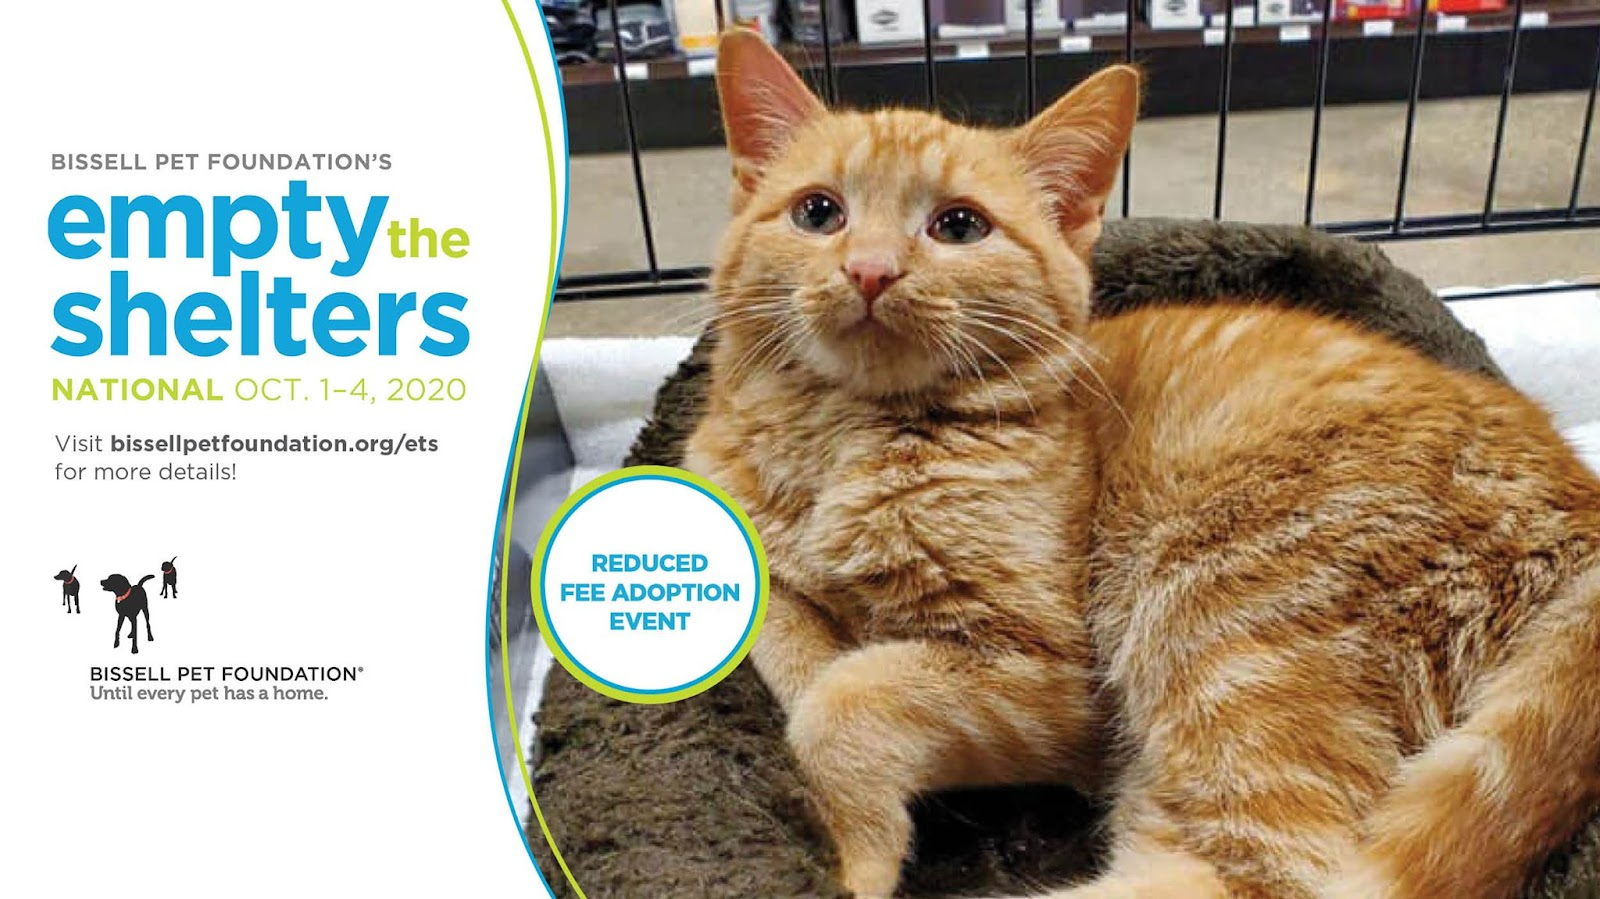 Empty the Shelters event